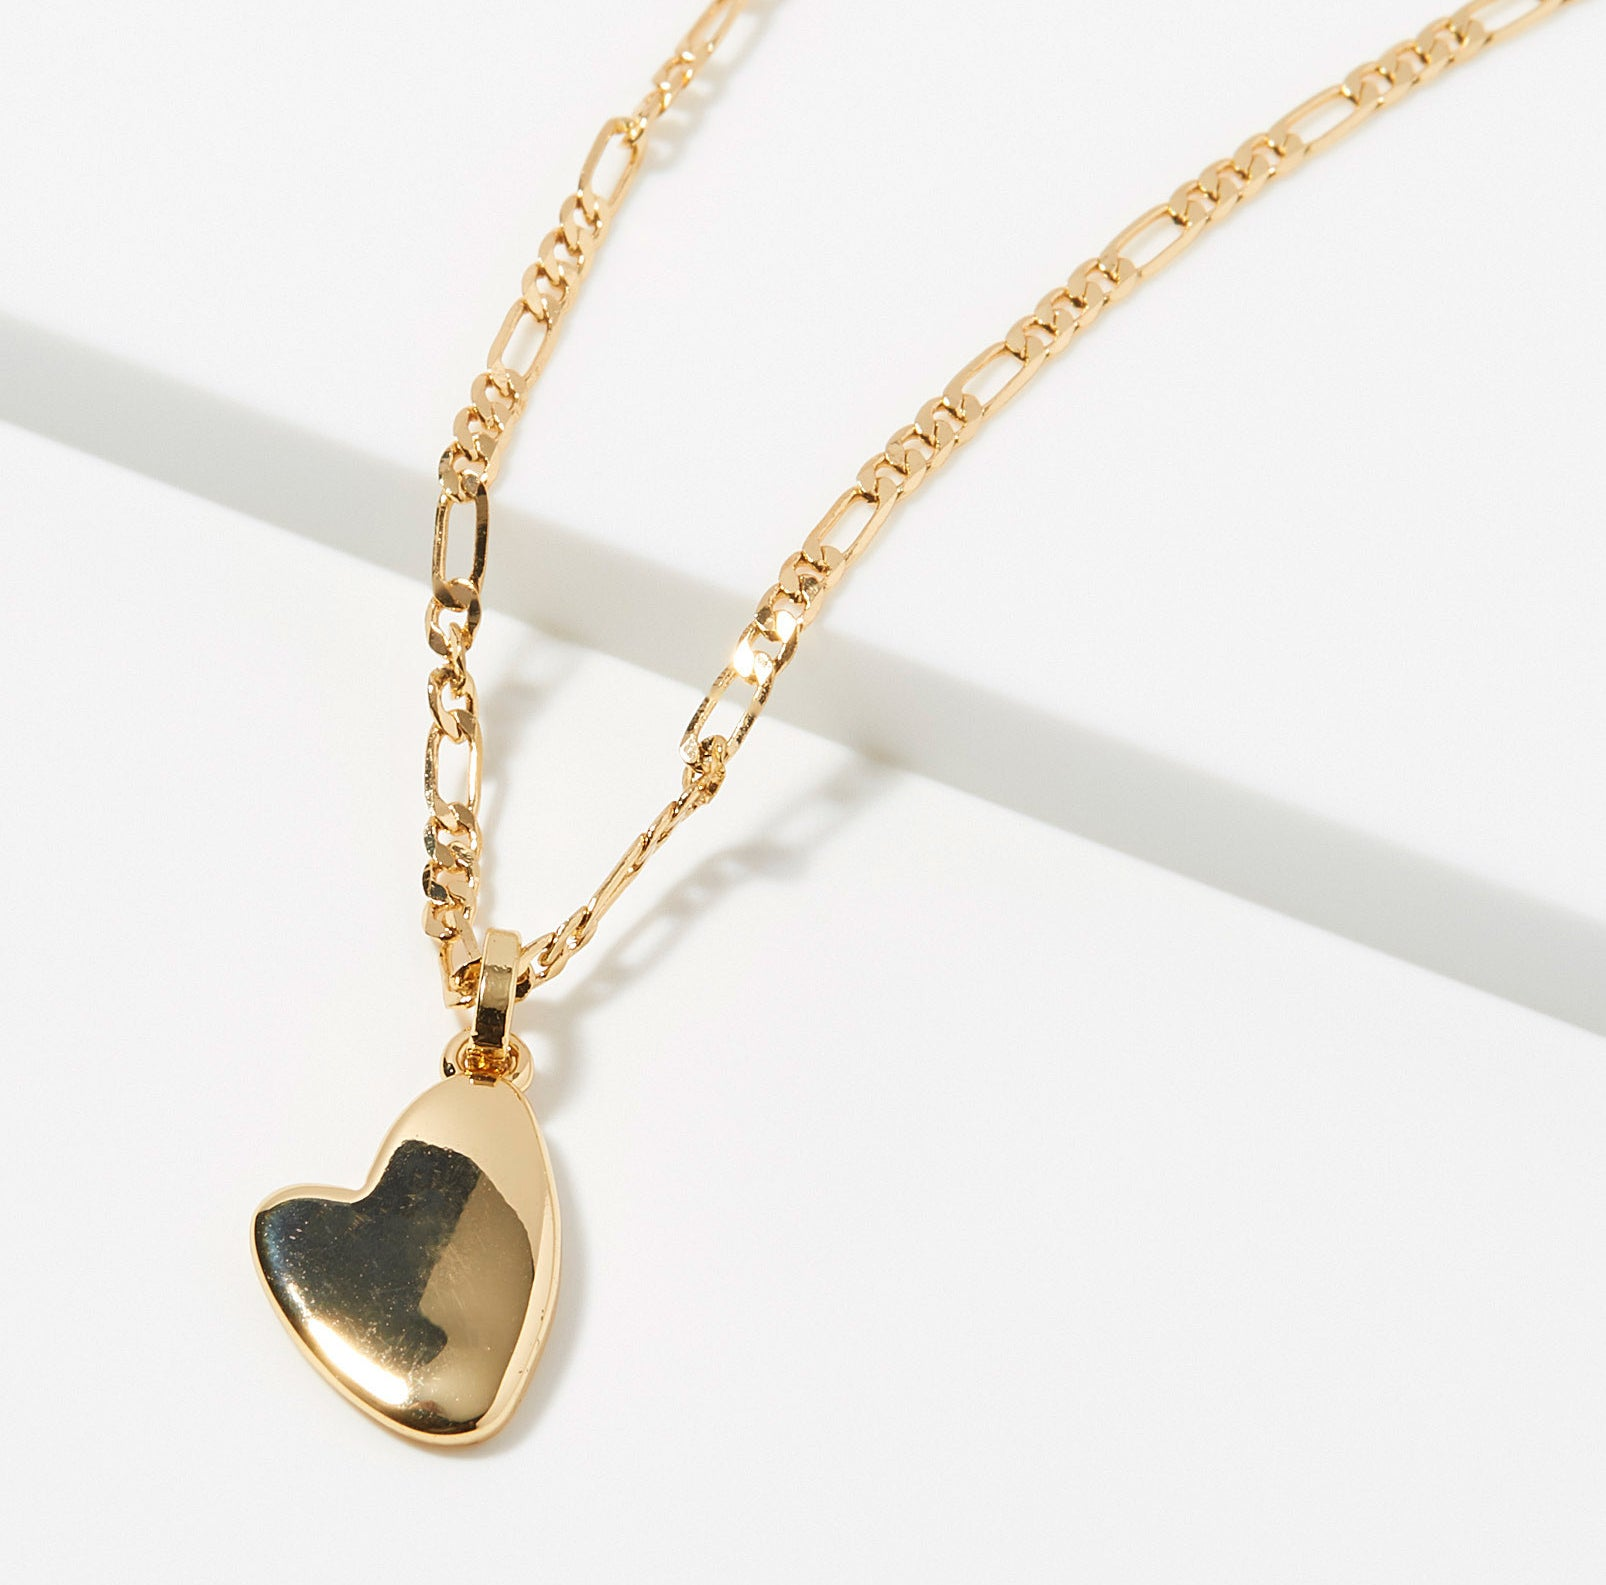 A gold chain necklace with a heart-shaped pendant